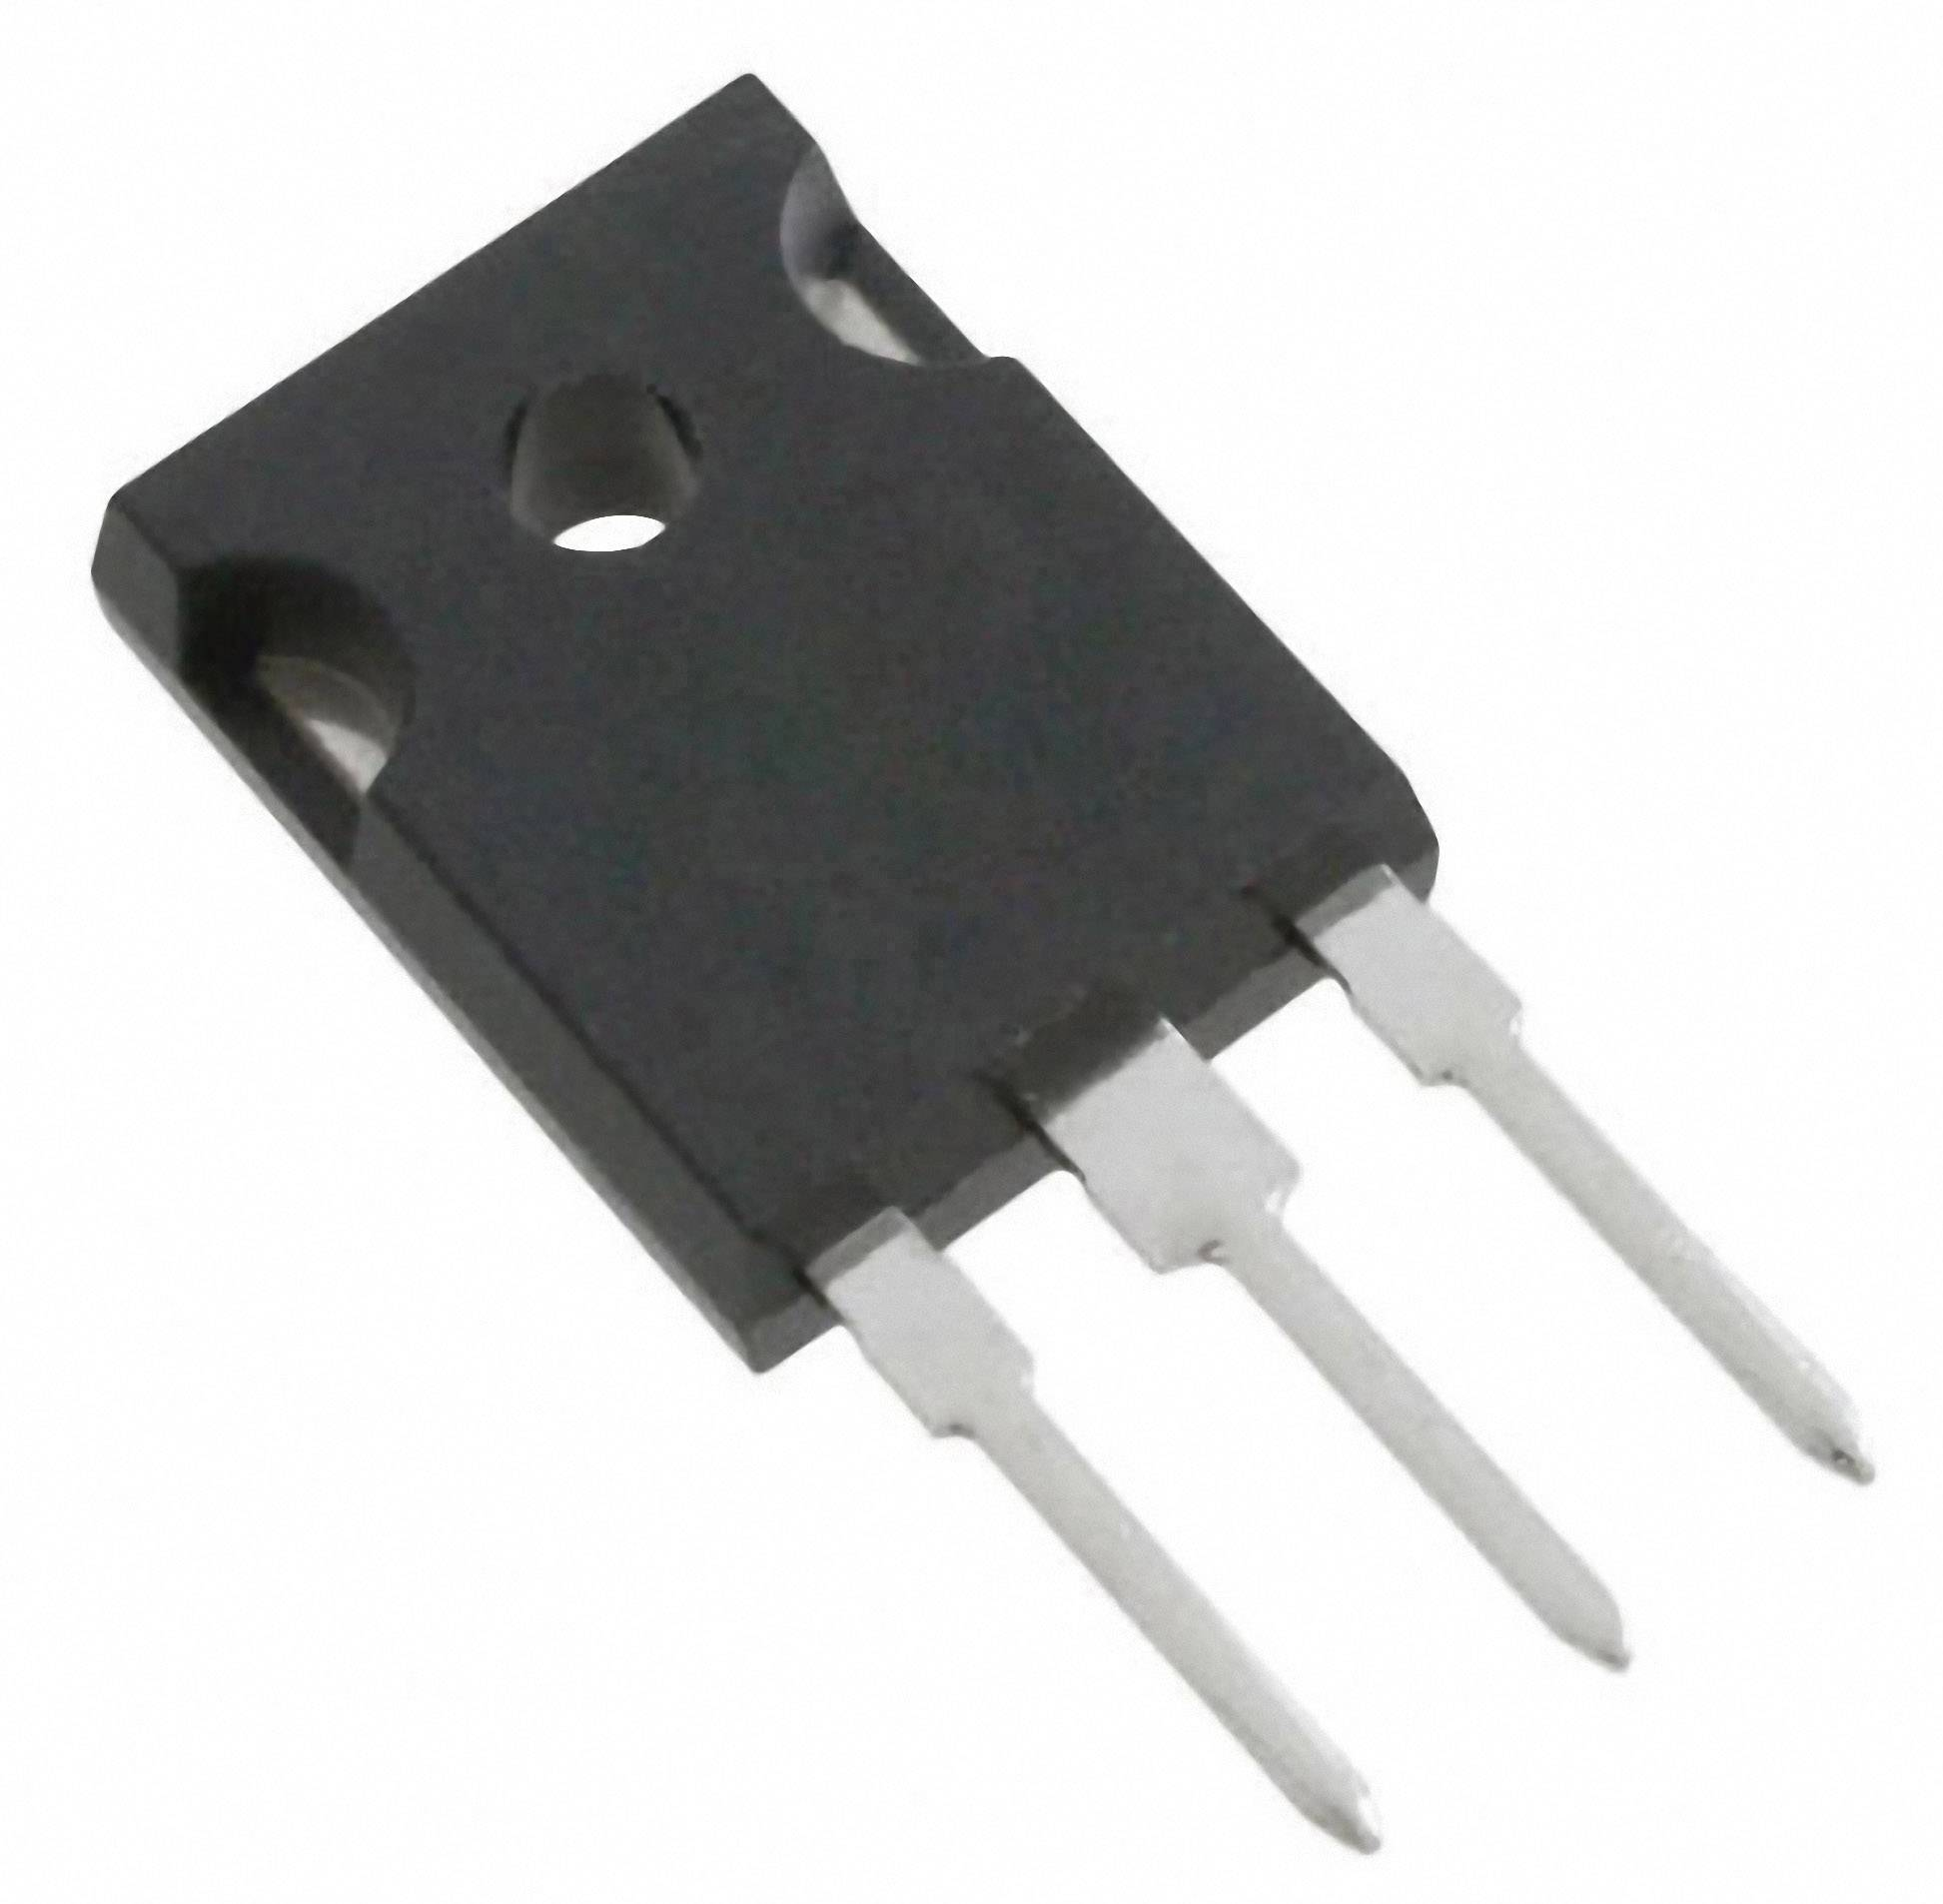 MOSFET Fairchild Semiconductor N kanál N-CH 600V FCH47N60N TO-247-3 FSC